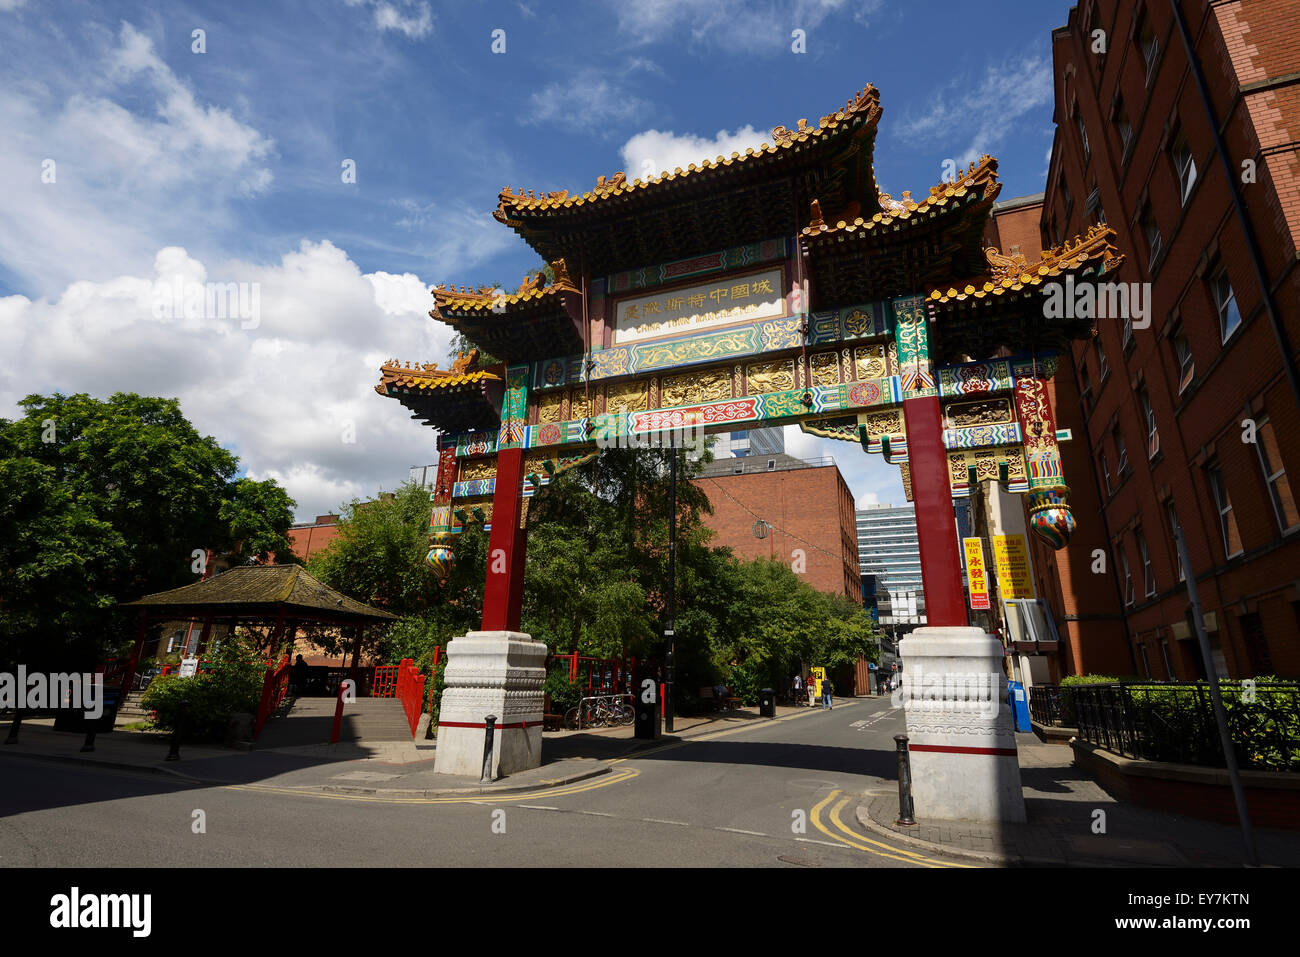 The Chinese Arch in the Chinatown district of Manchester city centre UK Stock Photo